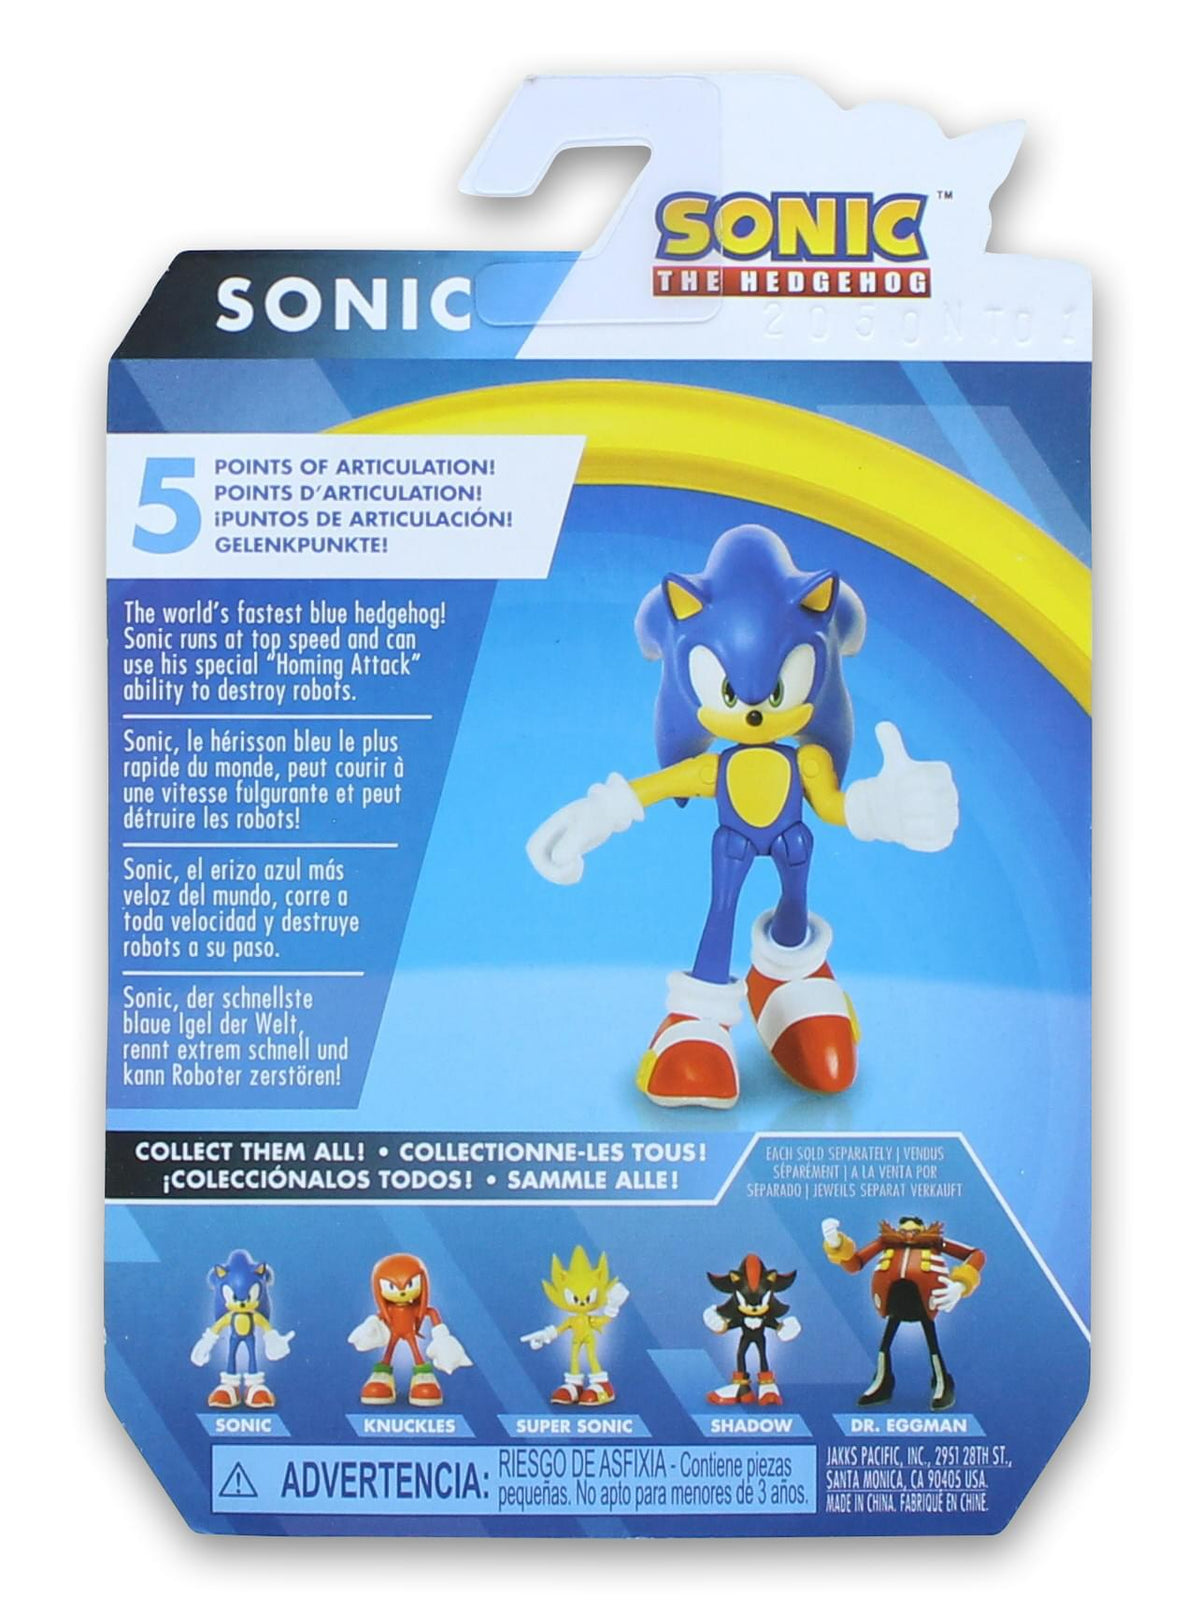 Sonic the Hedgehog 2.5 Inch Action Figure | Modern Sonic